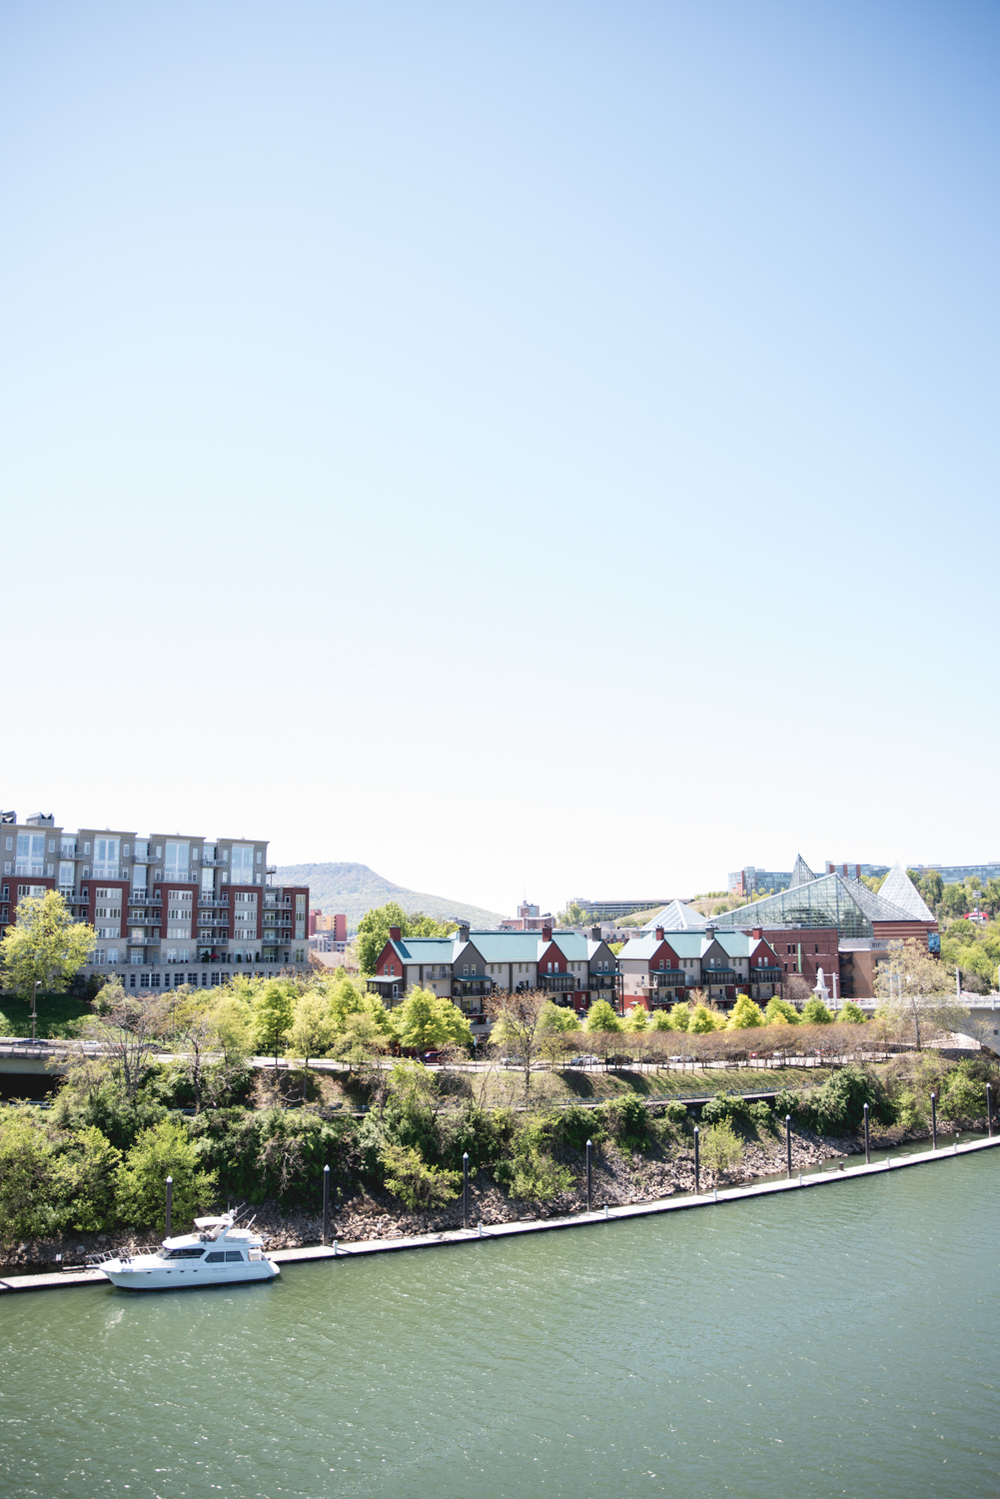 Tennessee riverfront from Walnut Street bridge in Chattanooga, Tennessee